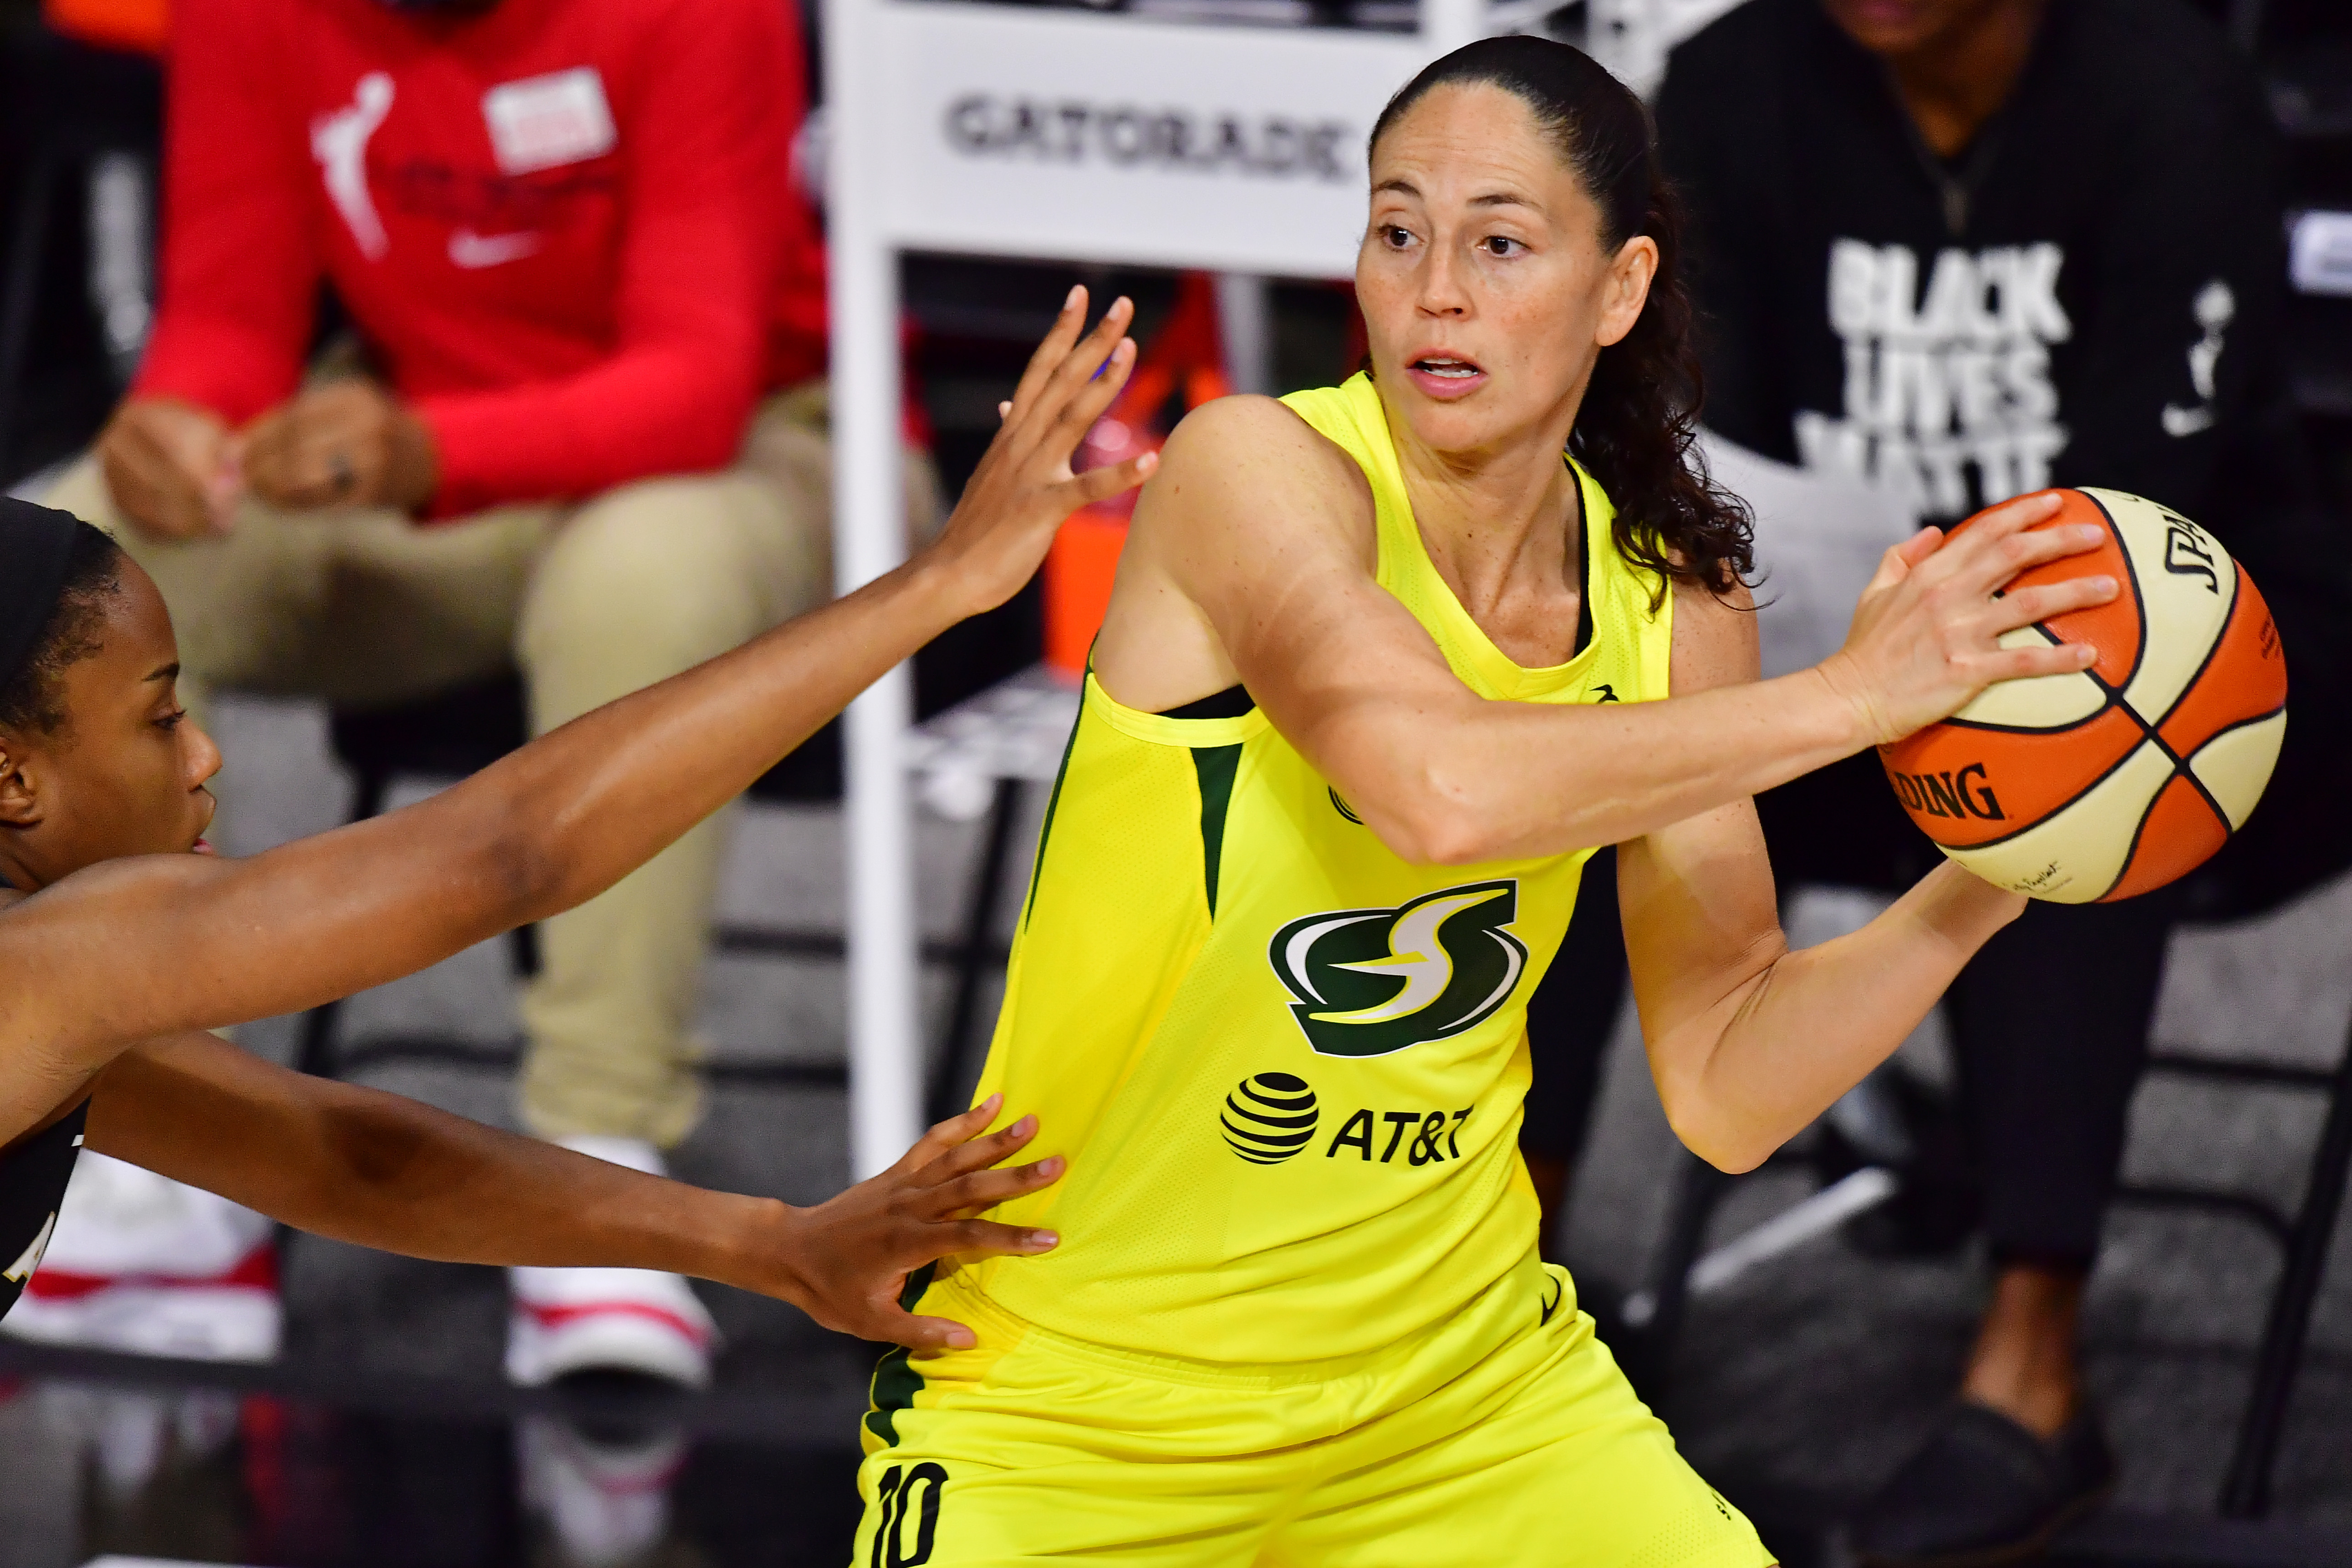 PALMETTO, FLORIDA - OCTOBER 02: Sue Bird #10 of the Seattle Storm looks to pass the ball around Lindsay Allen #15 of the Las Vegas Aces during the first half of Game 1 of the WNBA Finals at Feld Entertainment Center on October 02, 2020 in Palmetto, Florida. NOTE TO USER: User expressly acknowledges and agrees that, by downloading and or using this photograph, User is consenting to the terms and conditions of the Getty Images License Agreement. (Photo by Julio Aguilar/Getty Images)